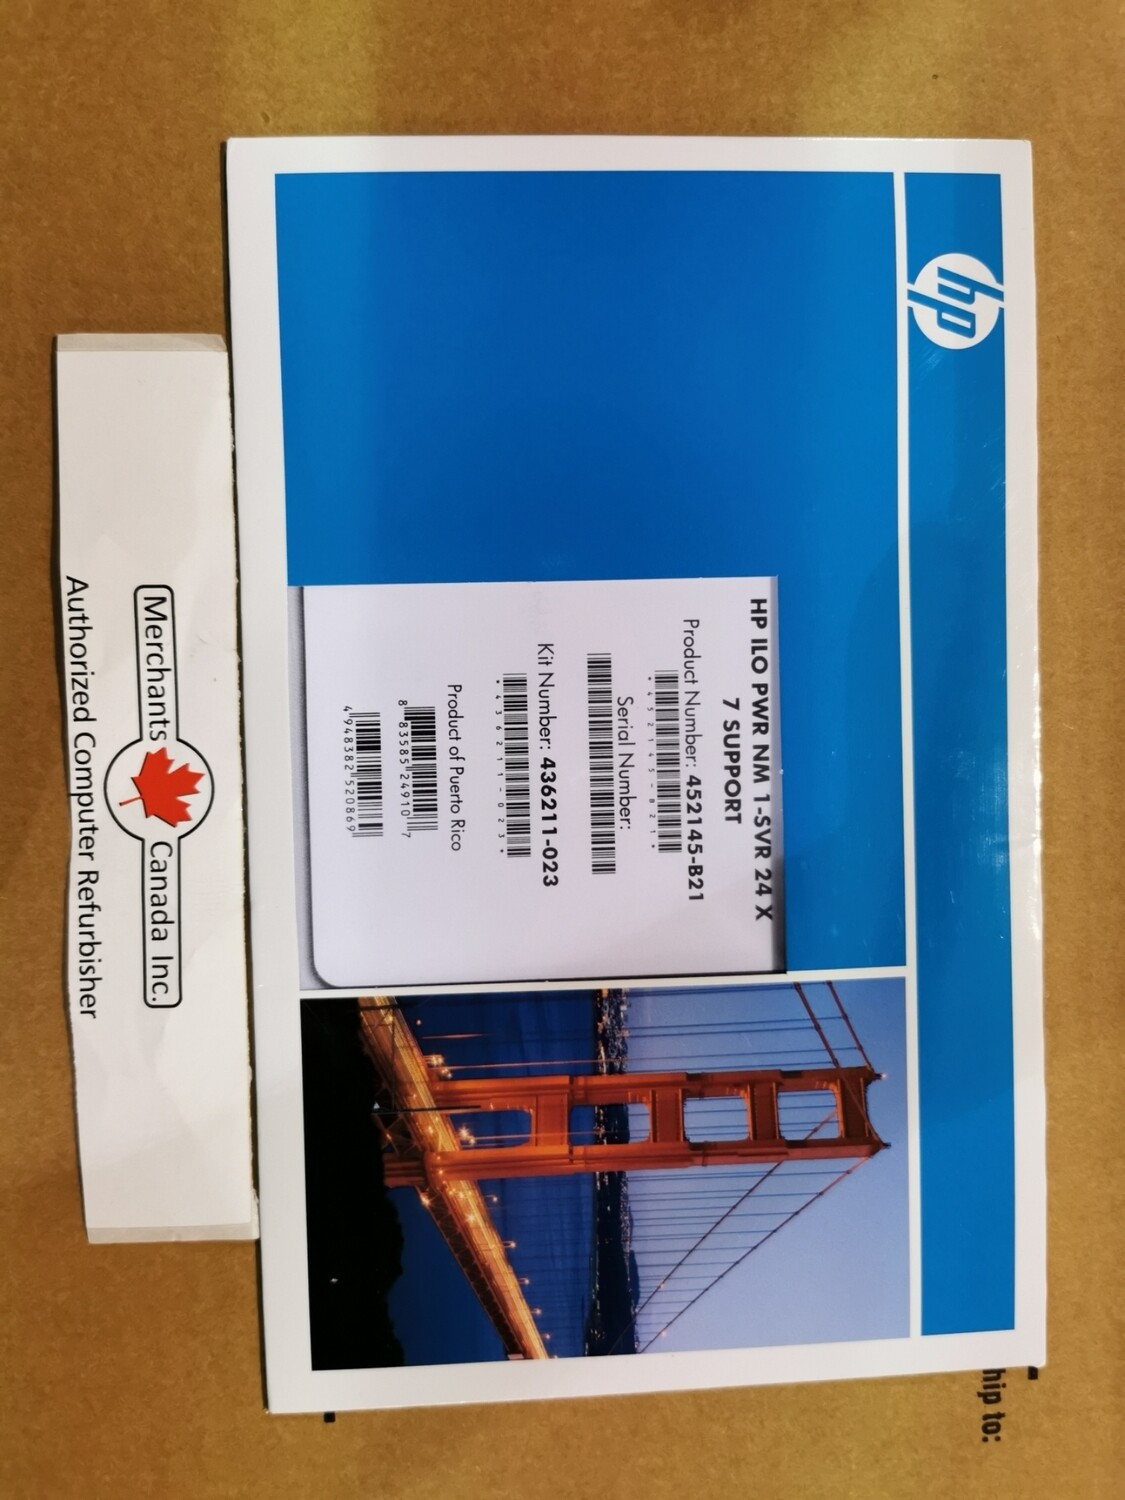 452145-B21 | Factory Sealed HP Software iLO Power Management Pack No Media | 1 Server, 1 year 24x7 Support License | 436211-023